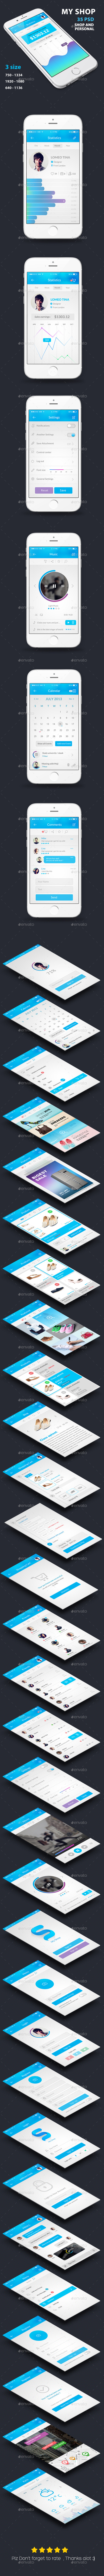 GraphicRiver UI Mobile My shop 11609994